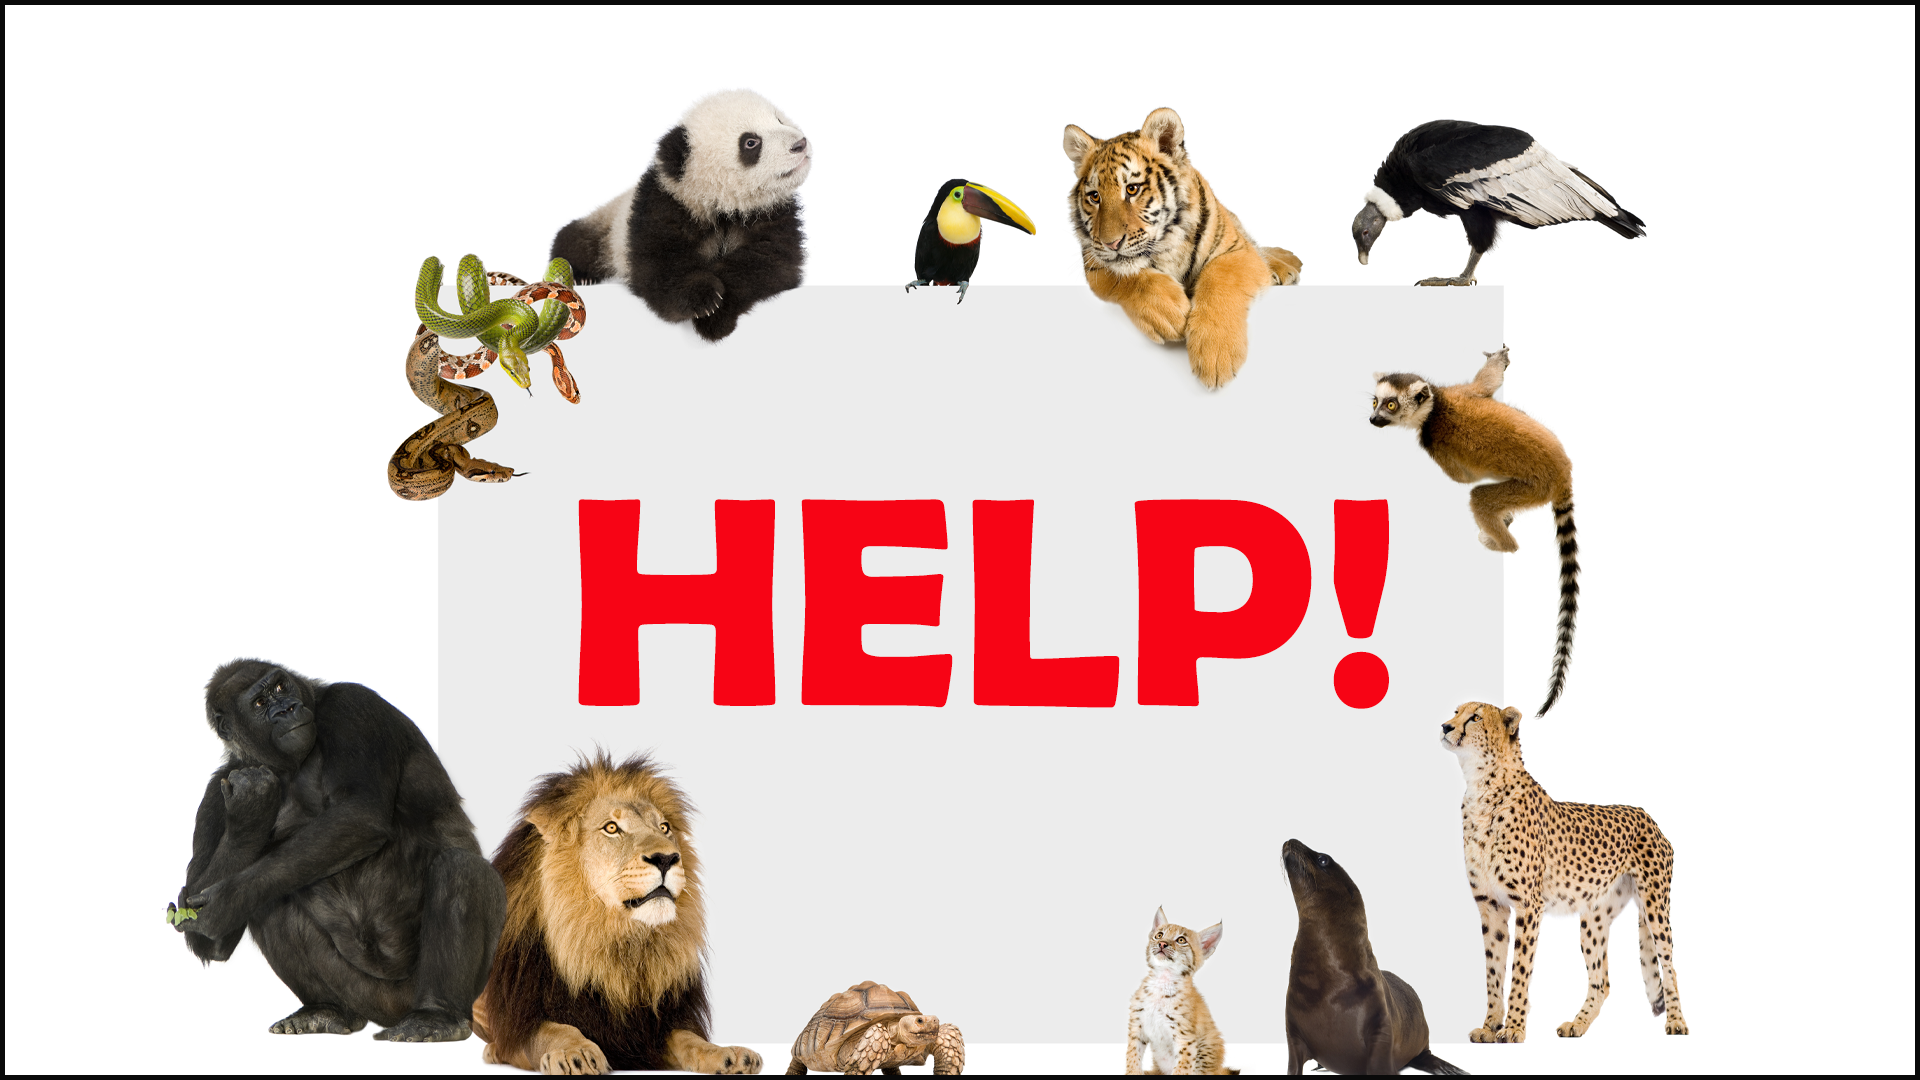 Helping Endangered Wildlife